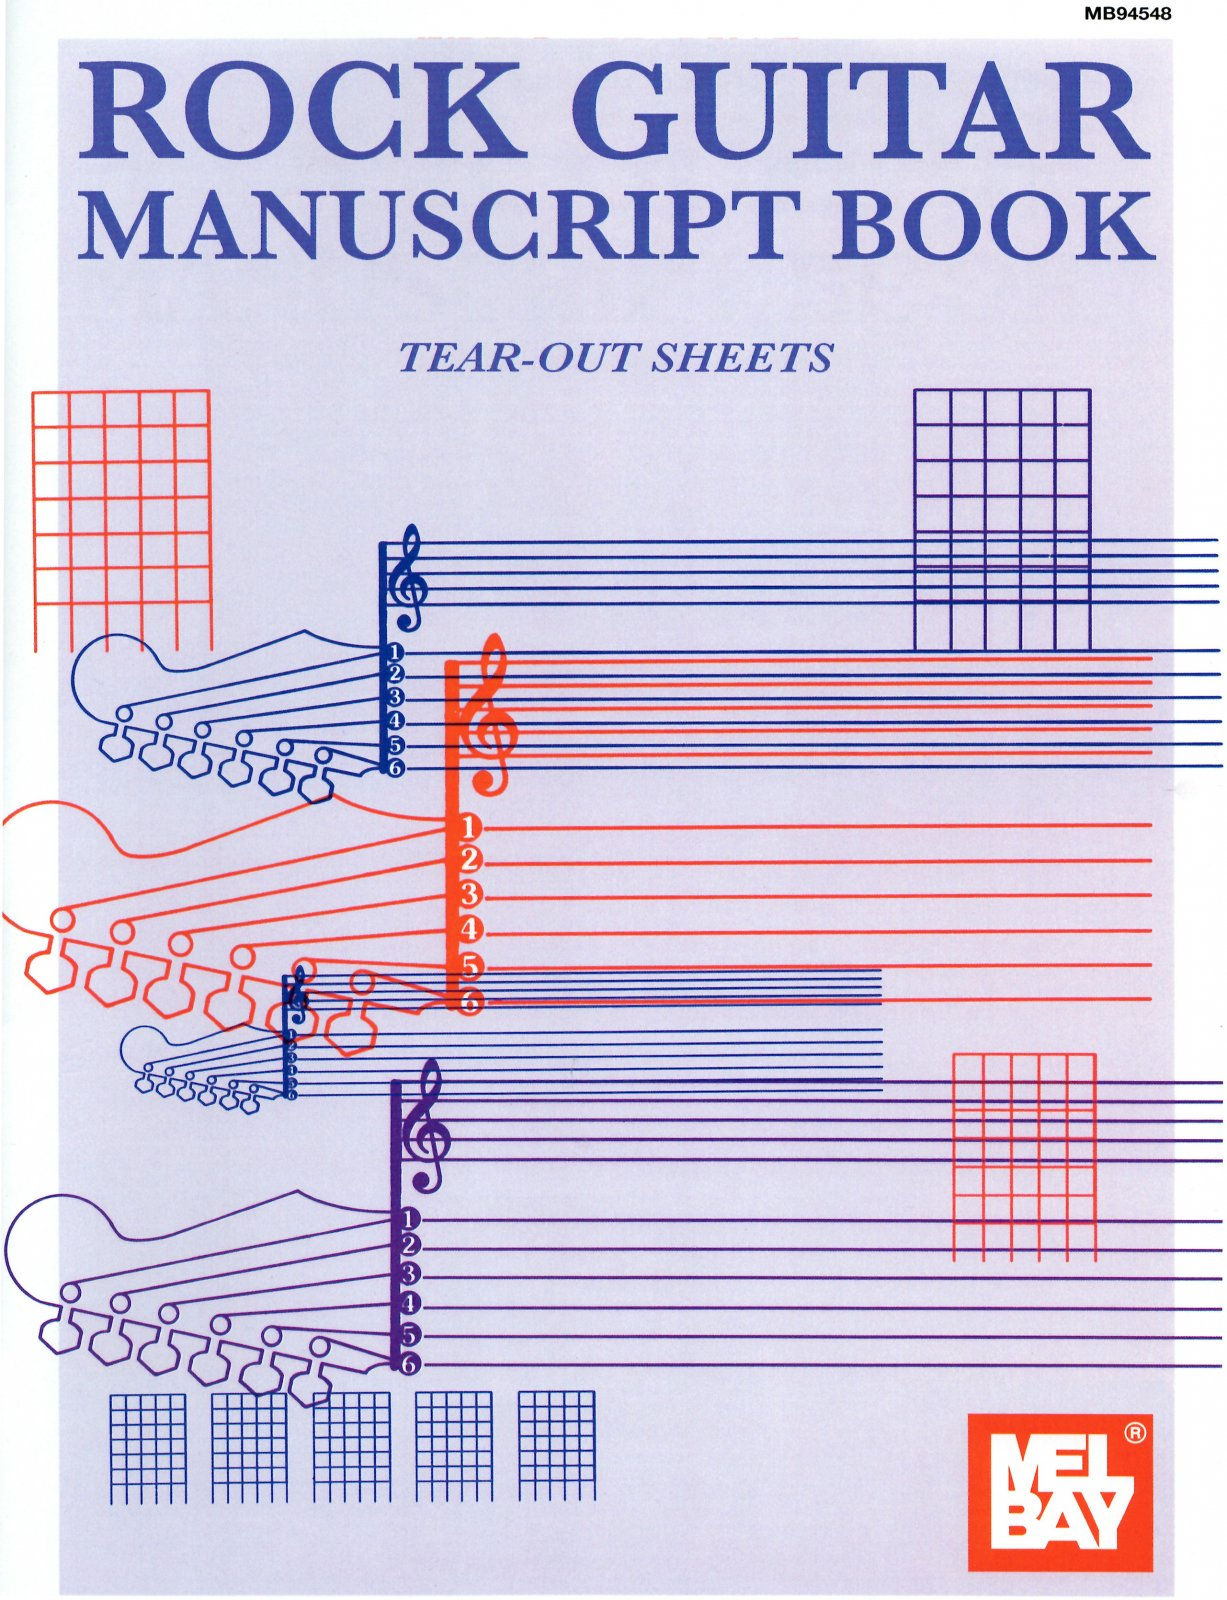 Rock Guitar Manuscript Book